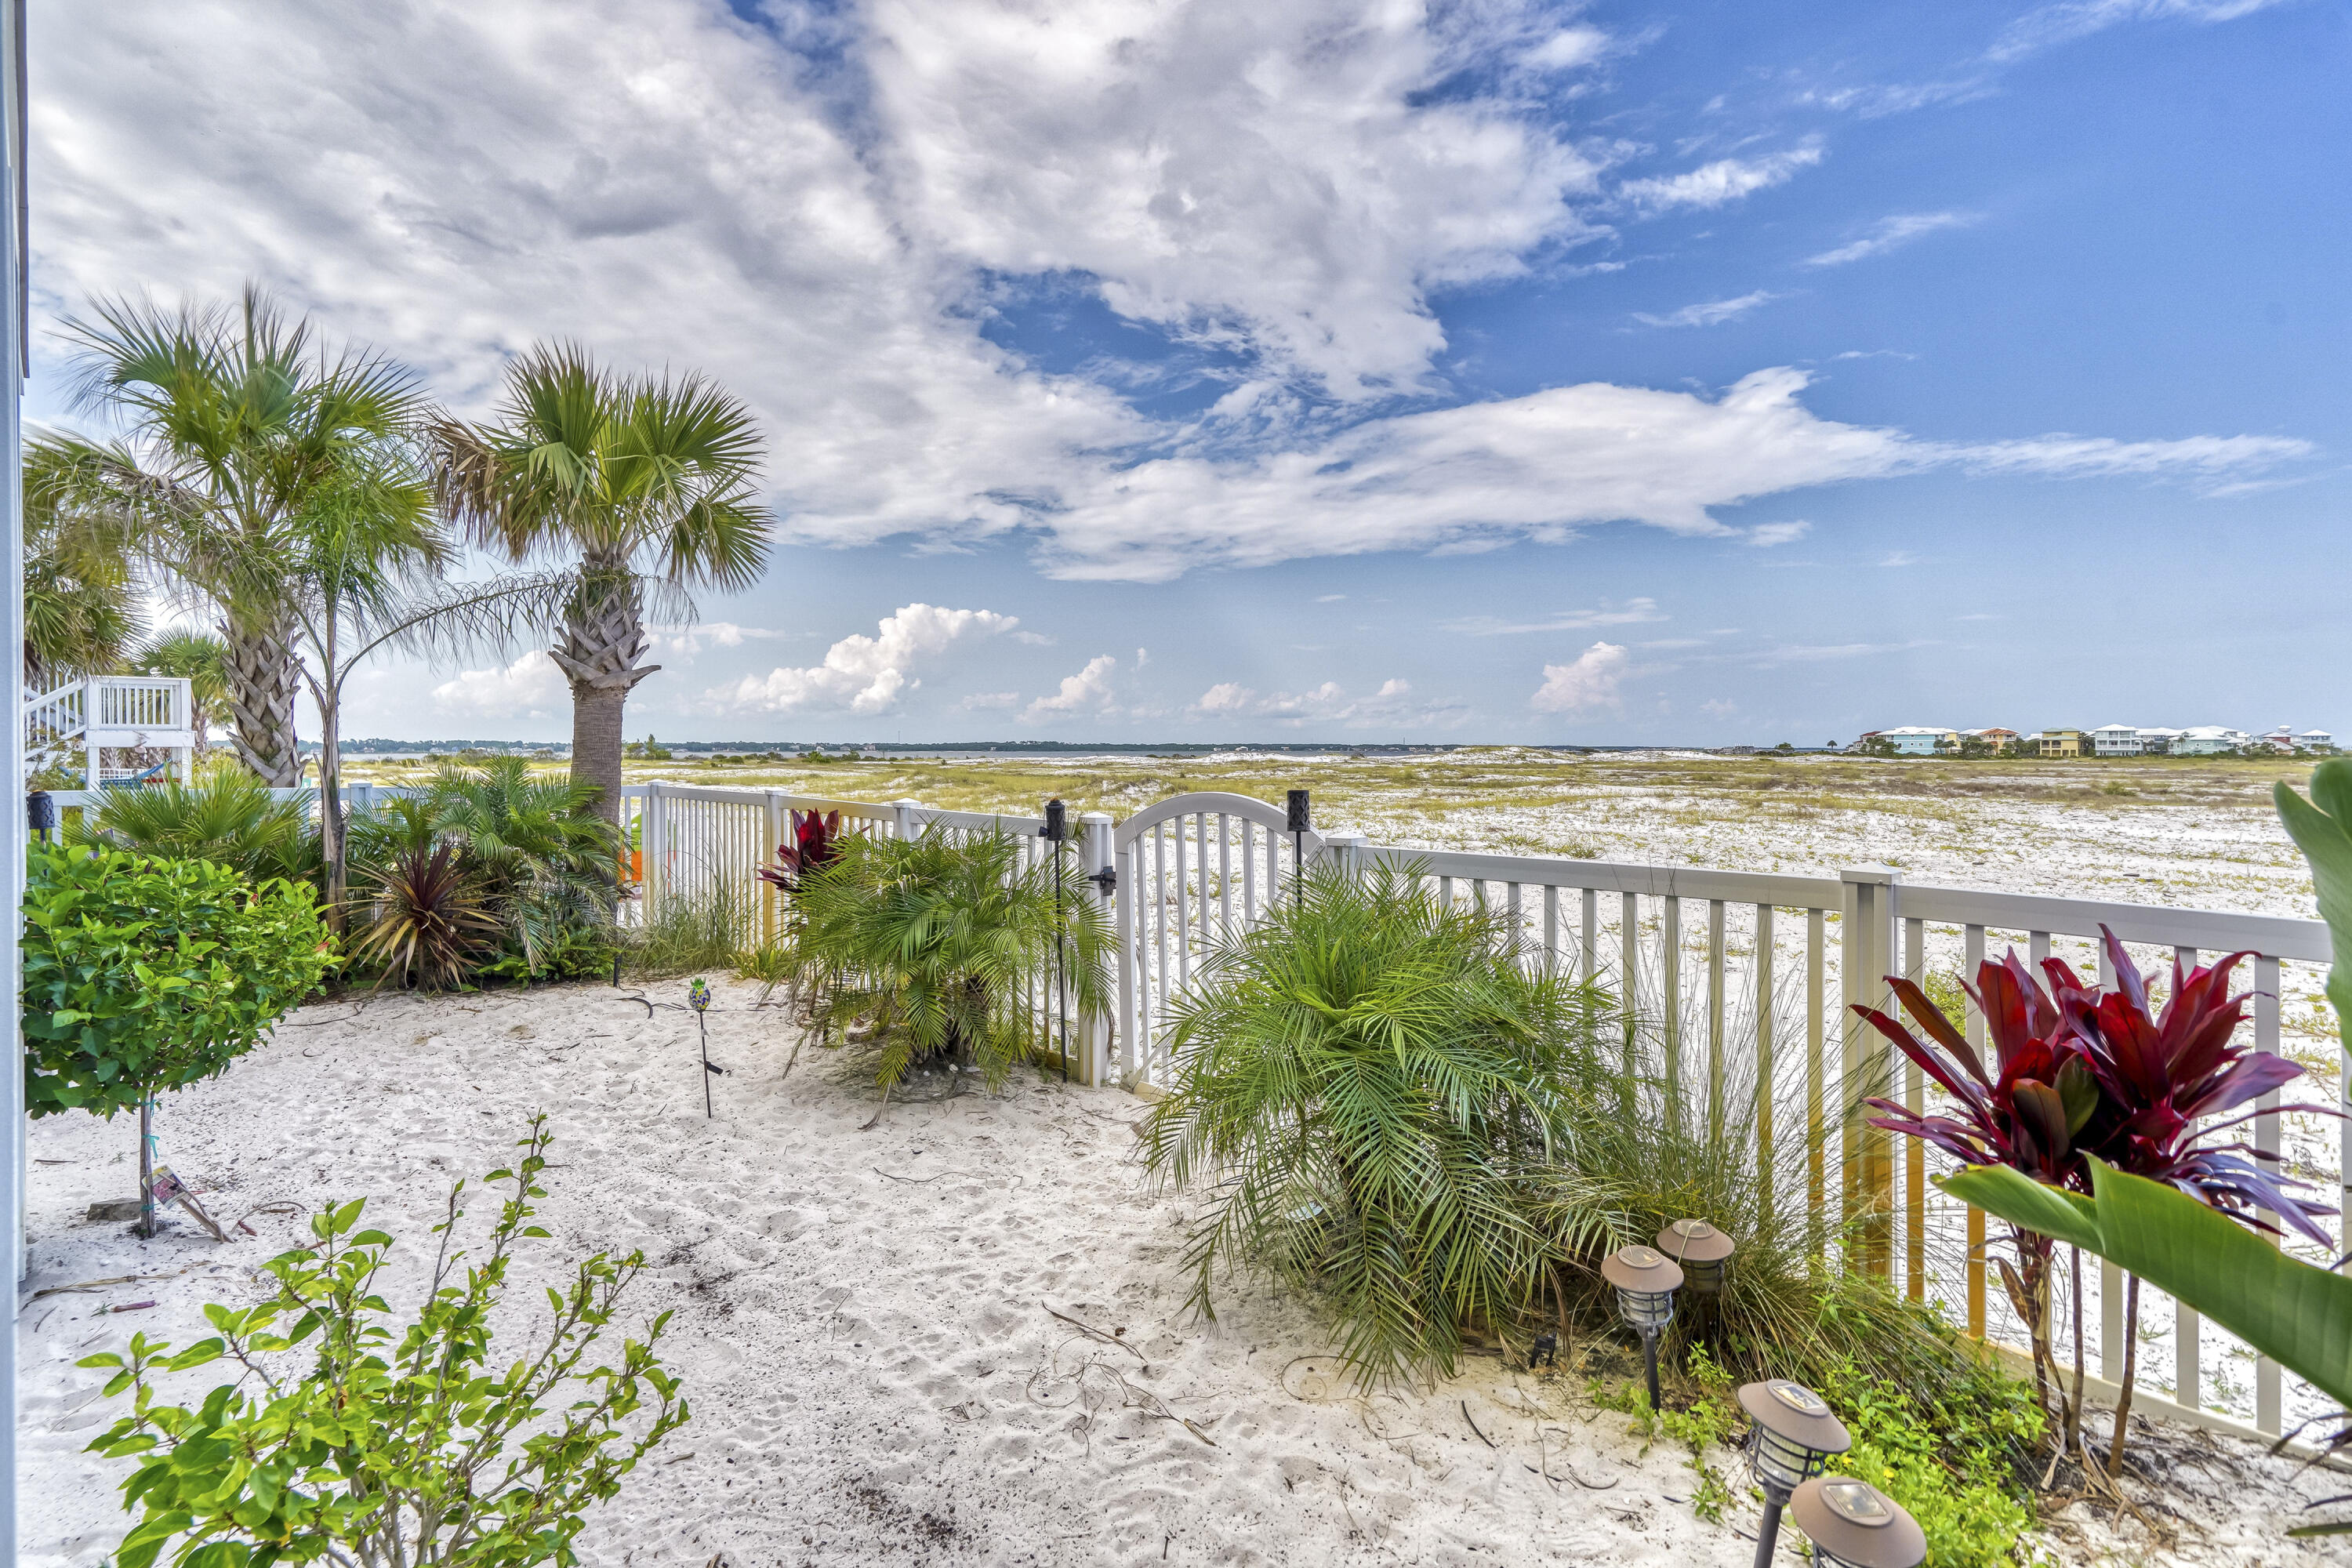 BACK YARD OPENS TO COUNTY BEACH LAND